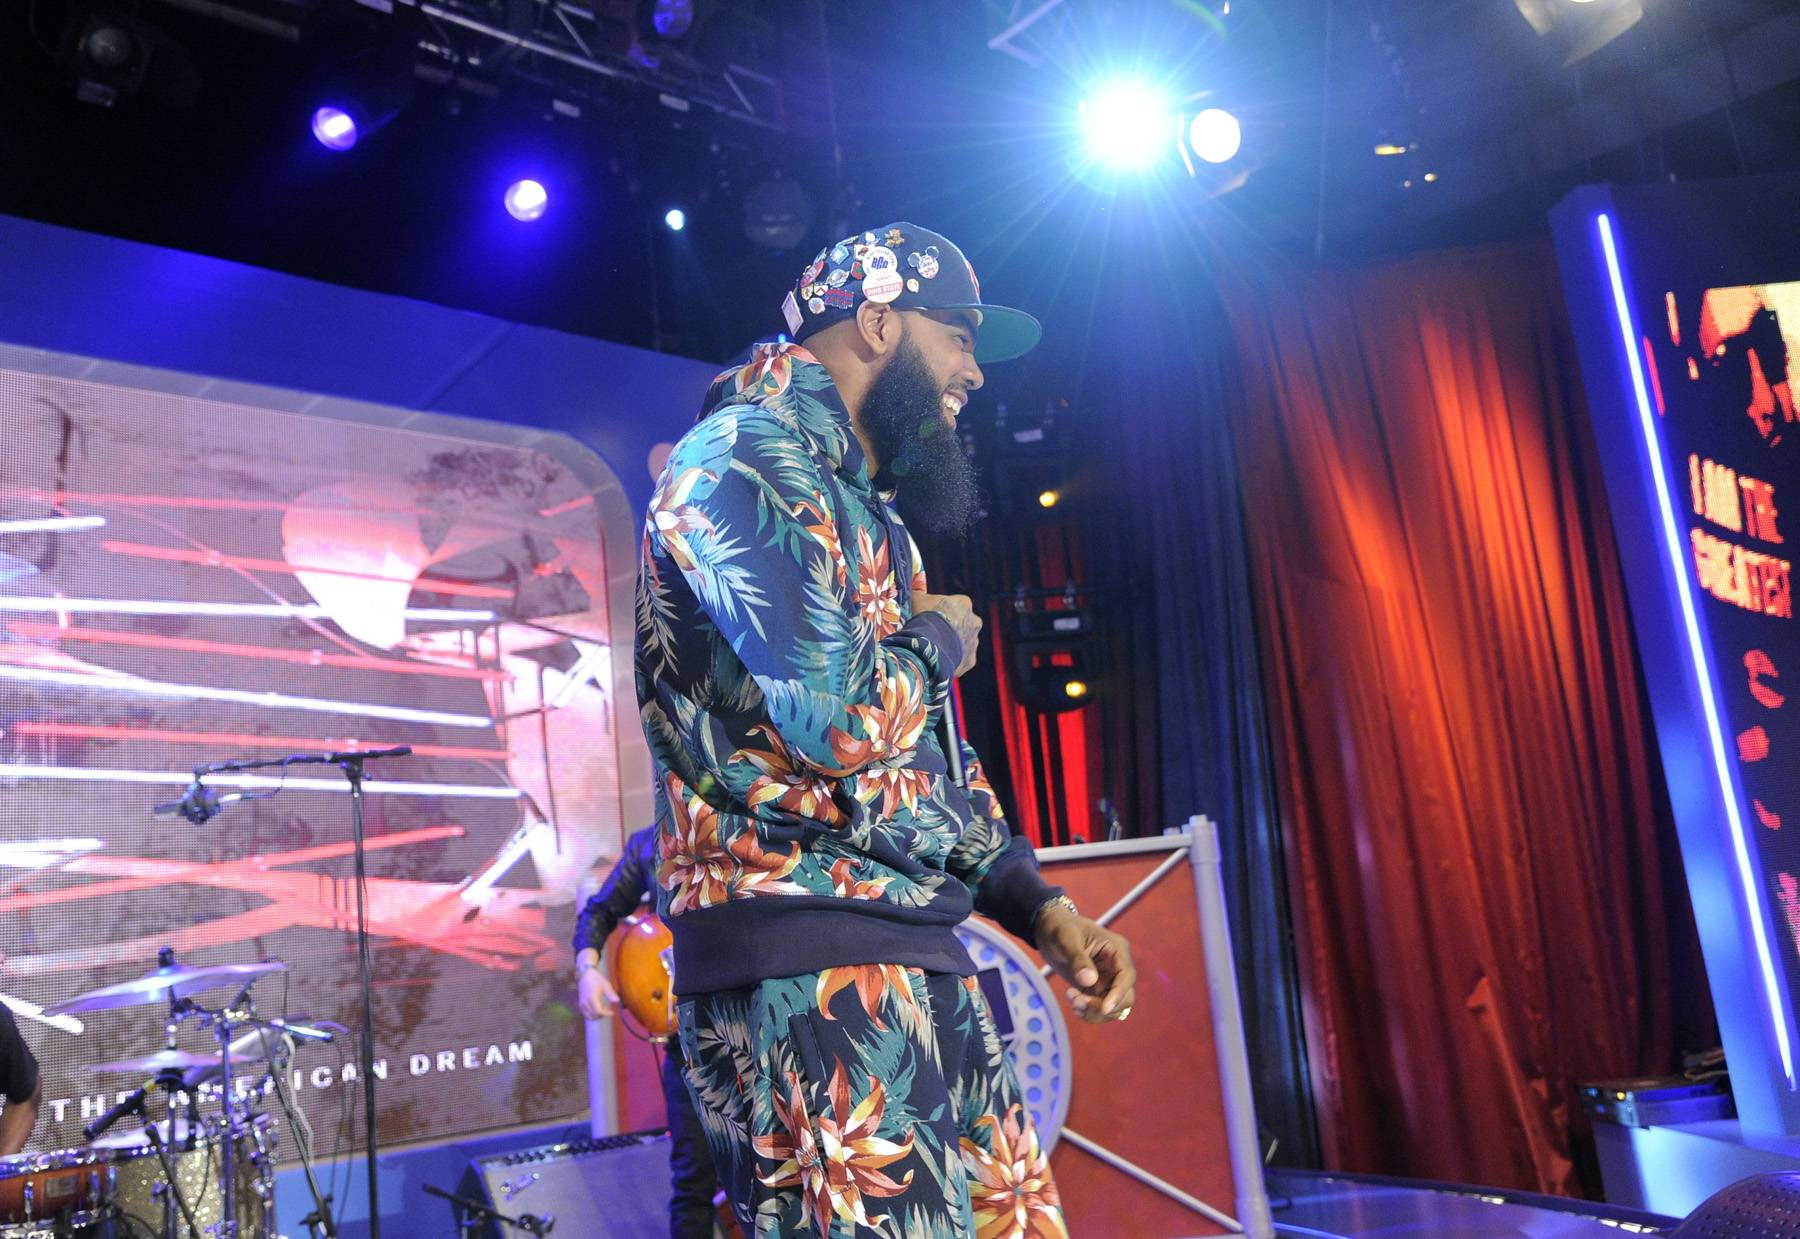 Stars and Bars - The response from the crowd brings a smile to Stalley's face. (photo: John Ricard / BET)